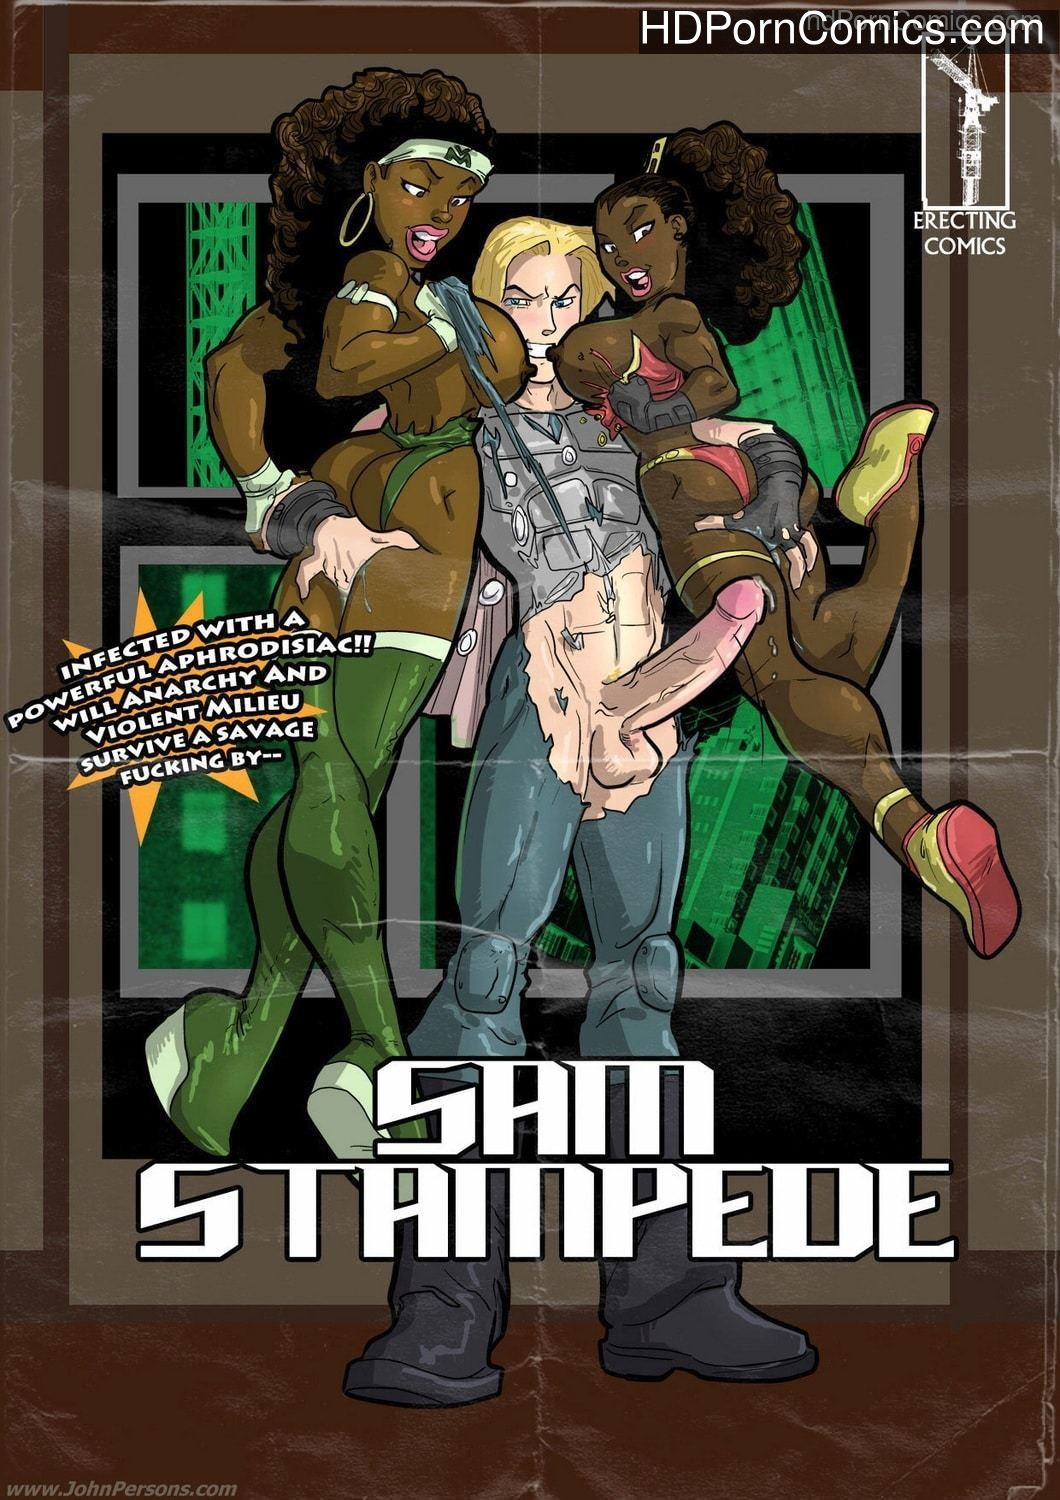 xxx Comix-John persons- Sam Stampede1 free sex comic